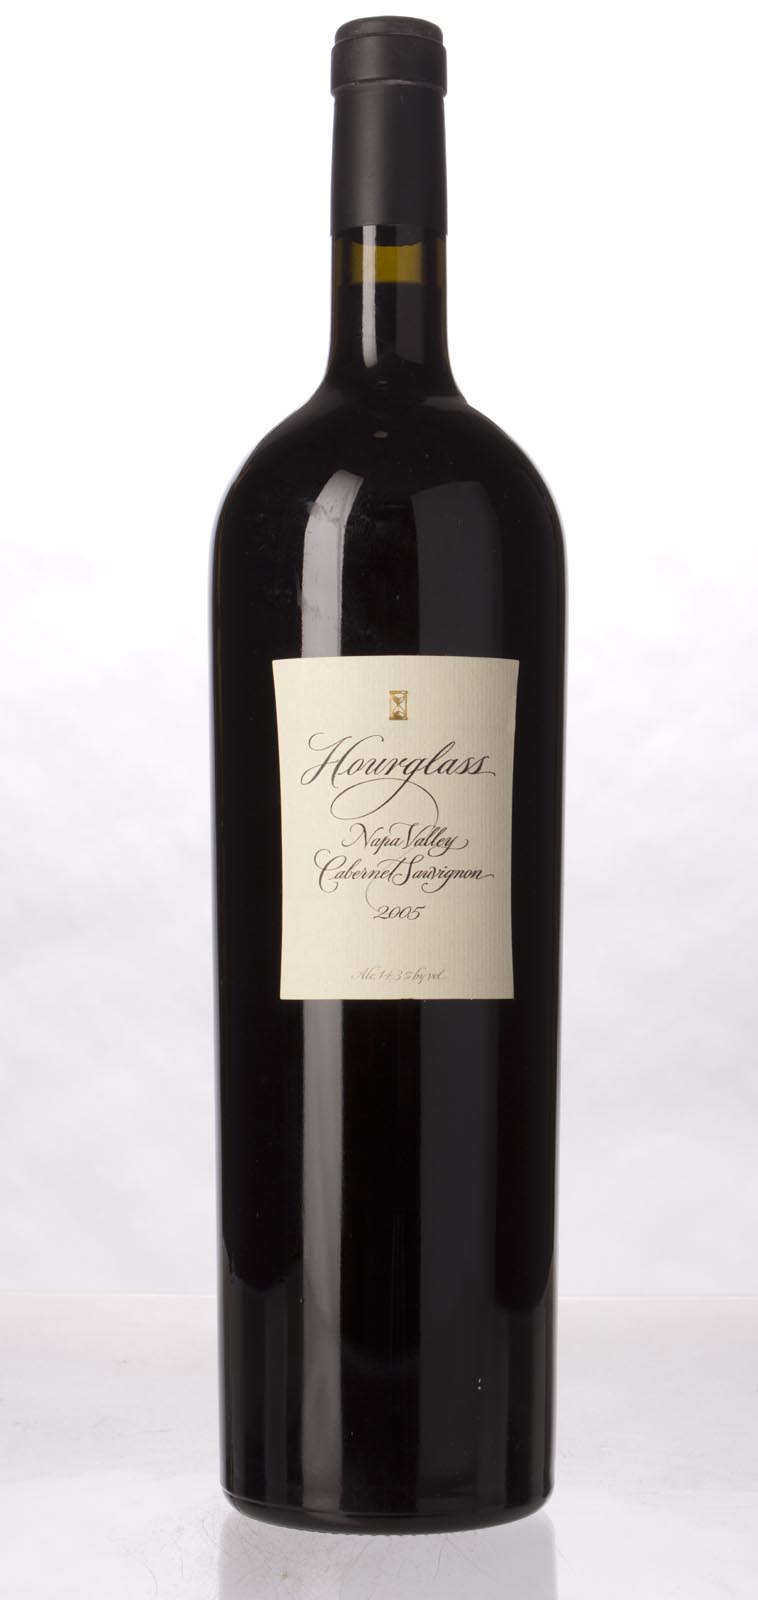 Hourglass Cabernet Sauvignon Napa Valley 2005, 1.5L (WA93) from The BPW - Merchants of rare and fine wines.